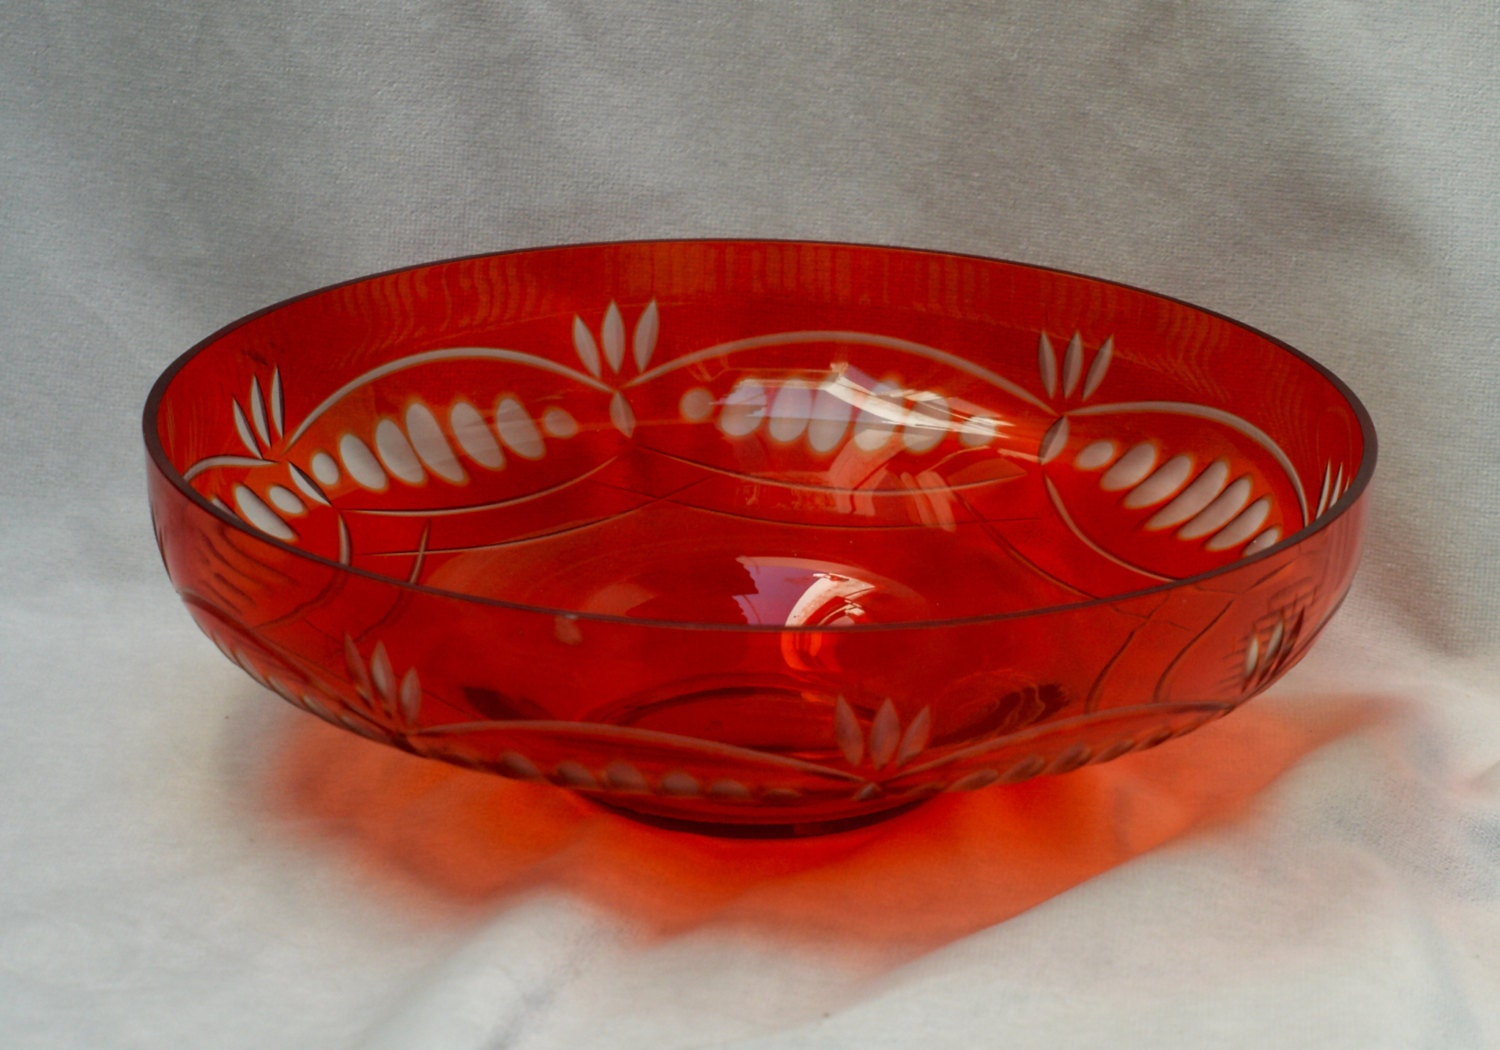 Vintage festive vermillion russian red glass centerpiece bowl